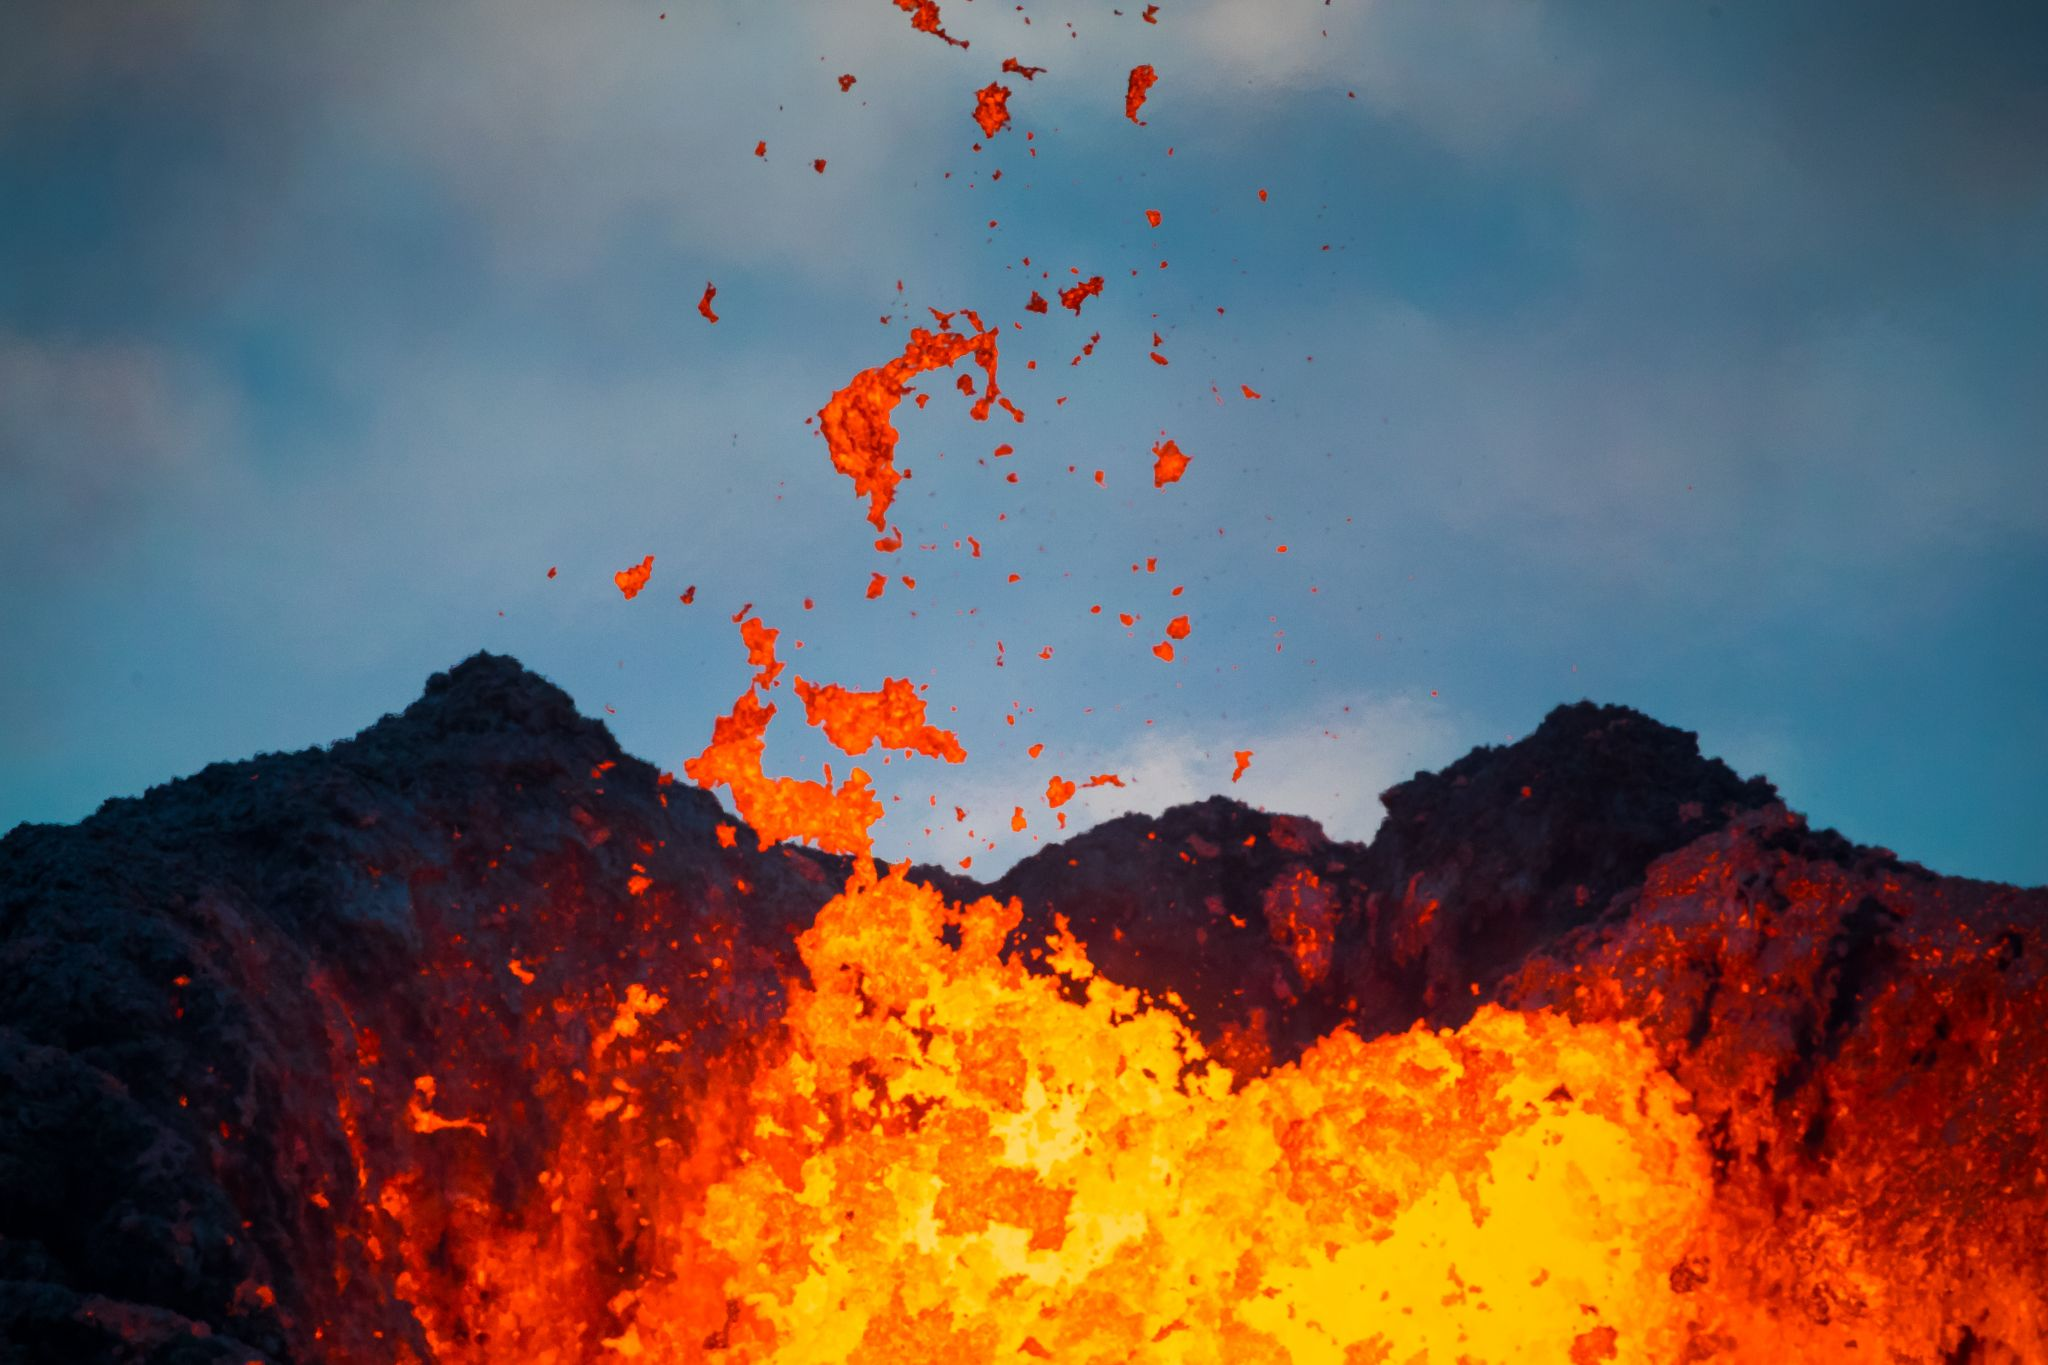 photo 1: Kilauea volcano, Hawaii. Threat Score: 263. Aviation Threat: 48